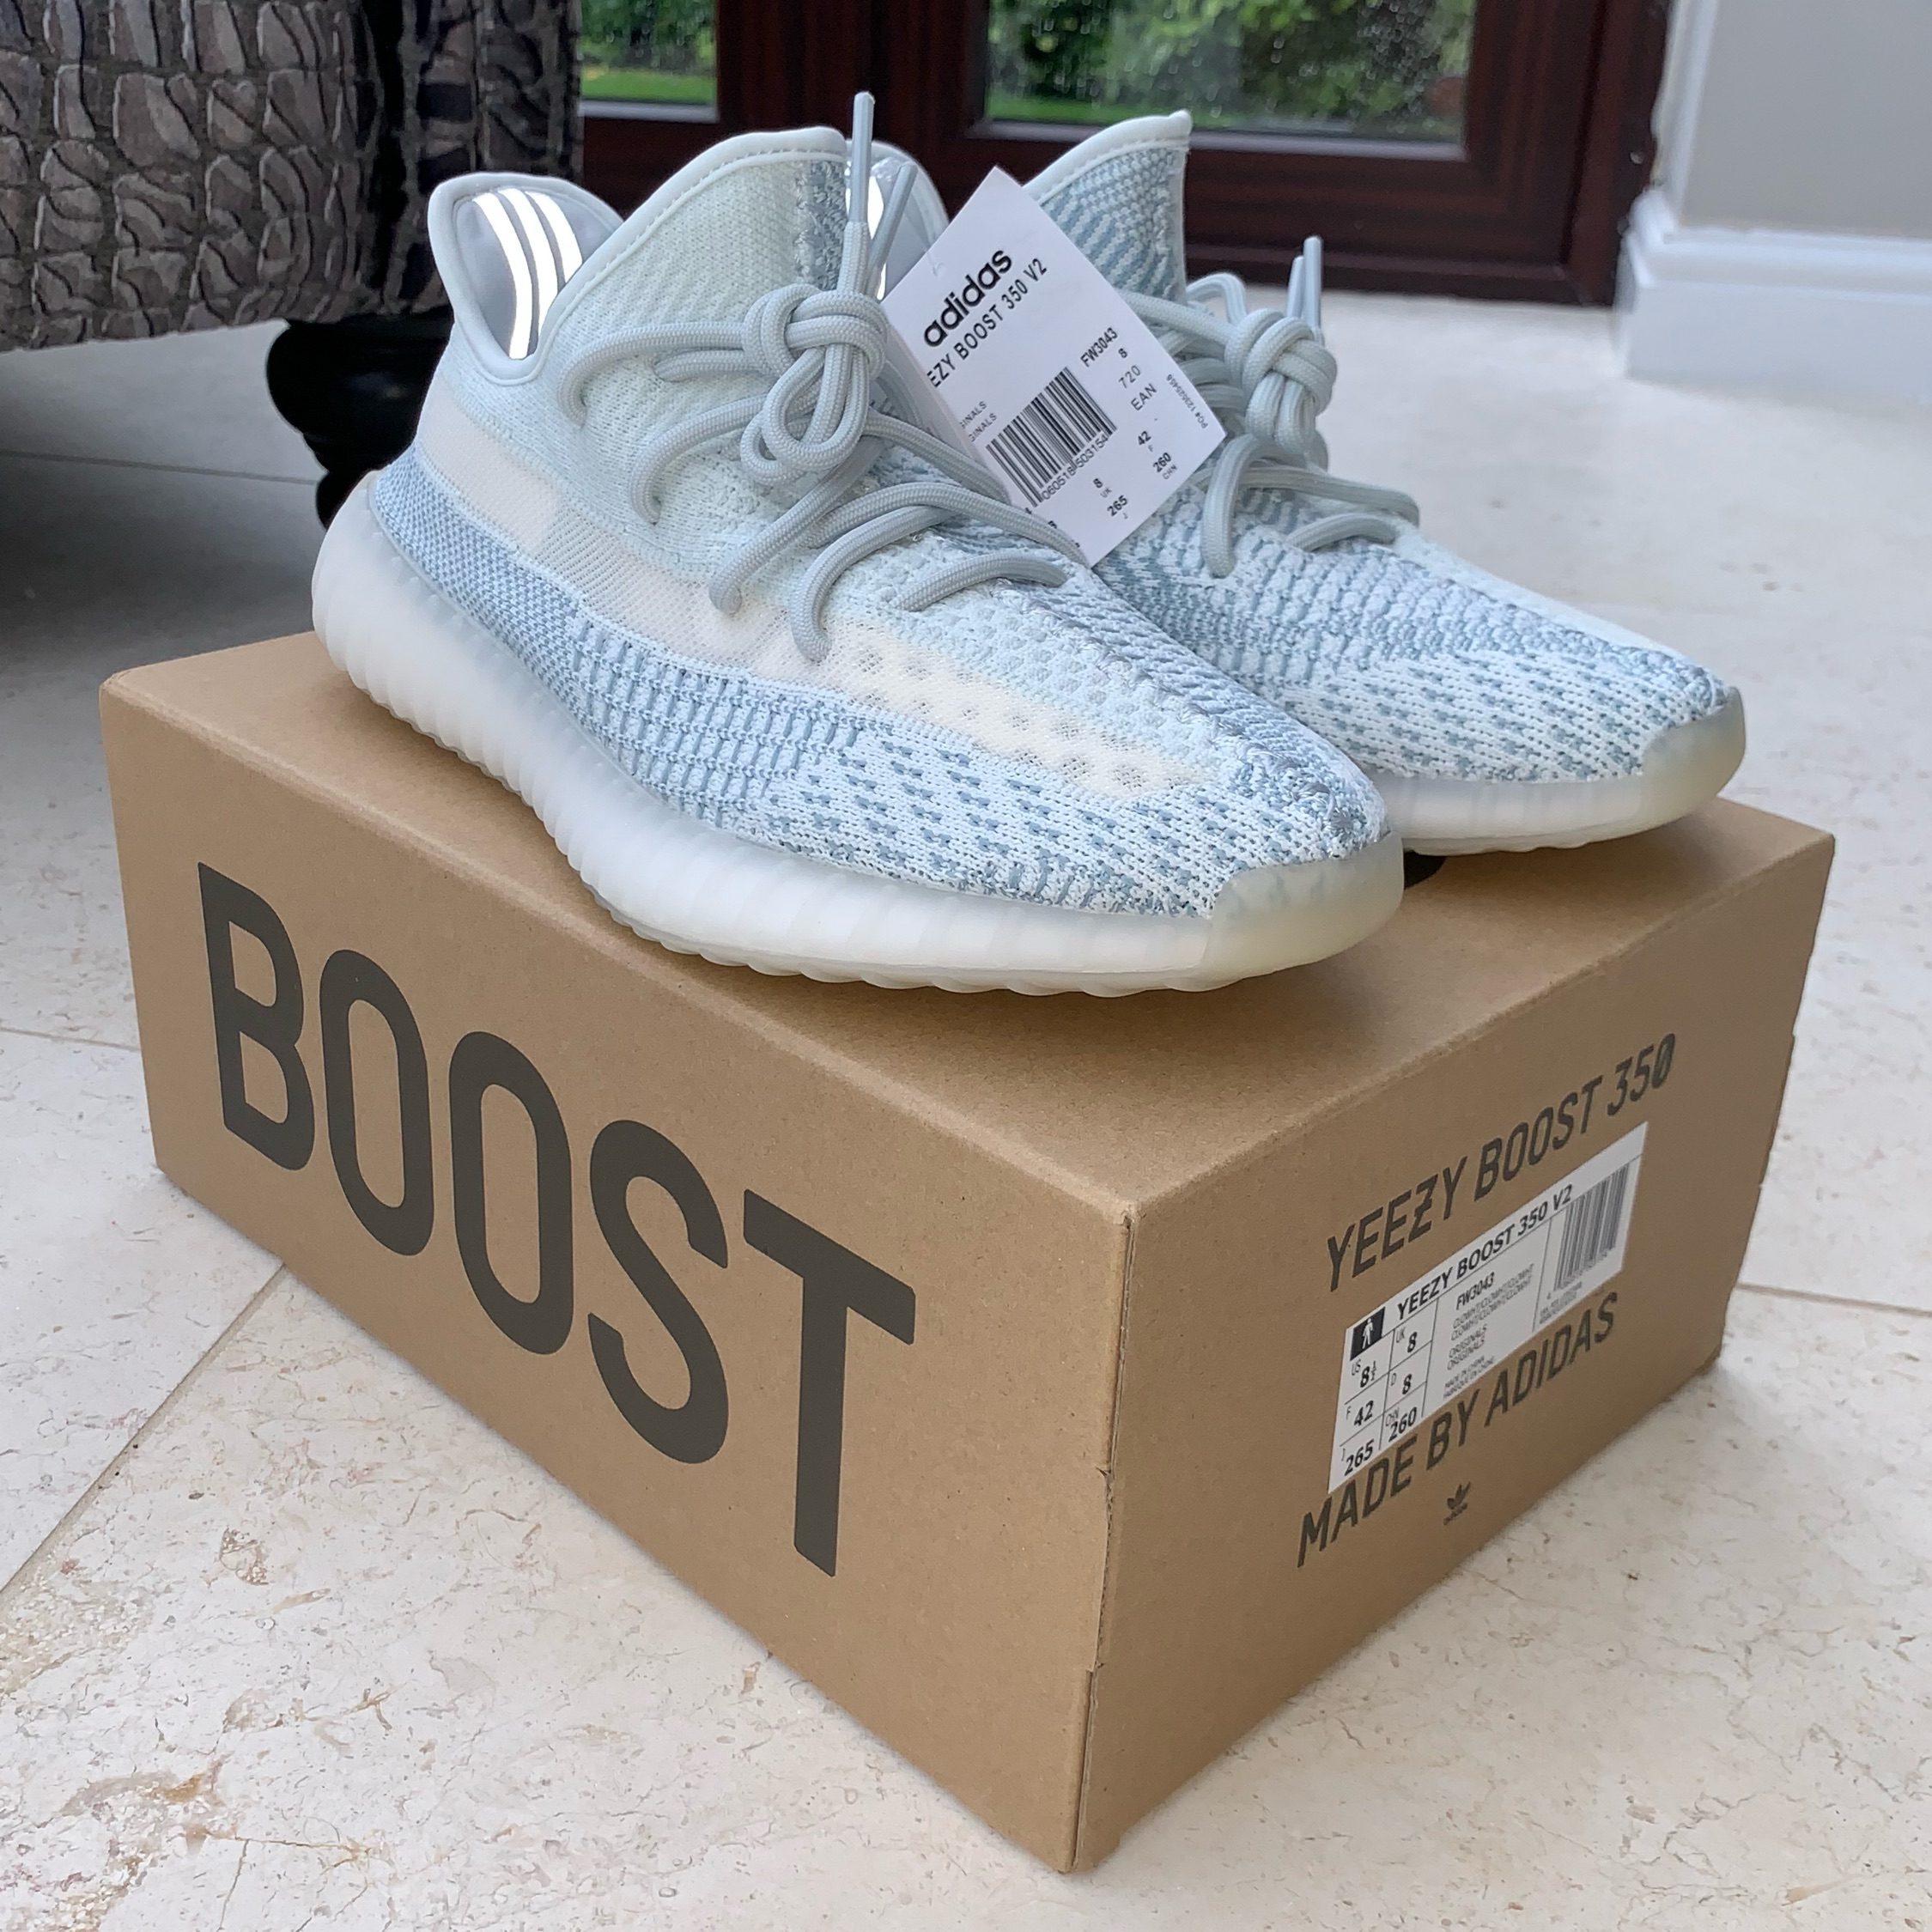 YEEZY BOOST 350 V2 CLOUD WHITE in